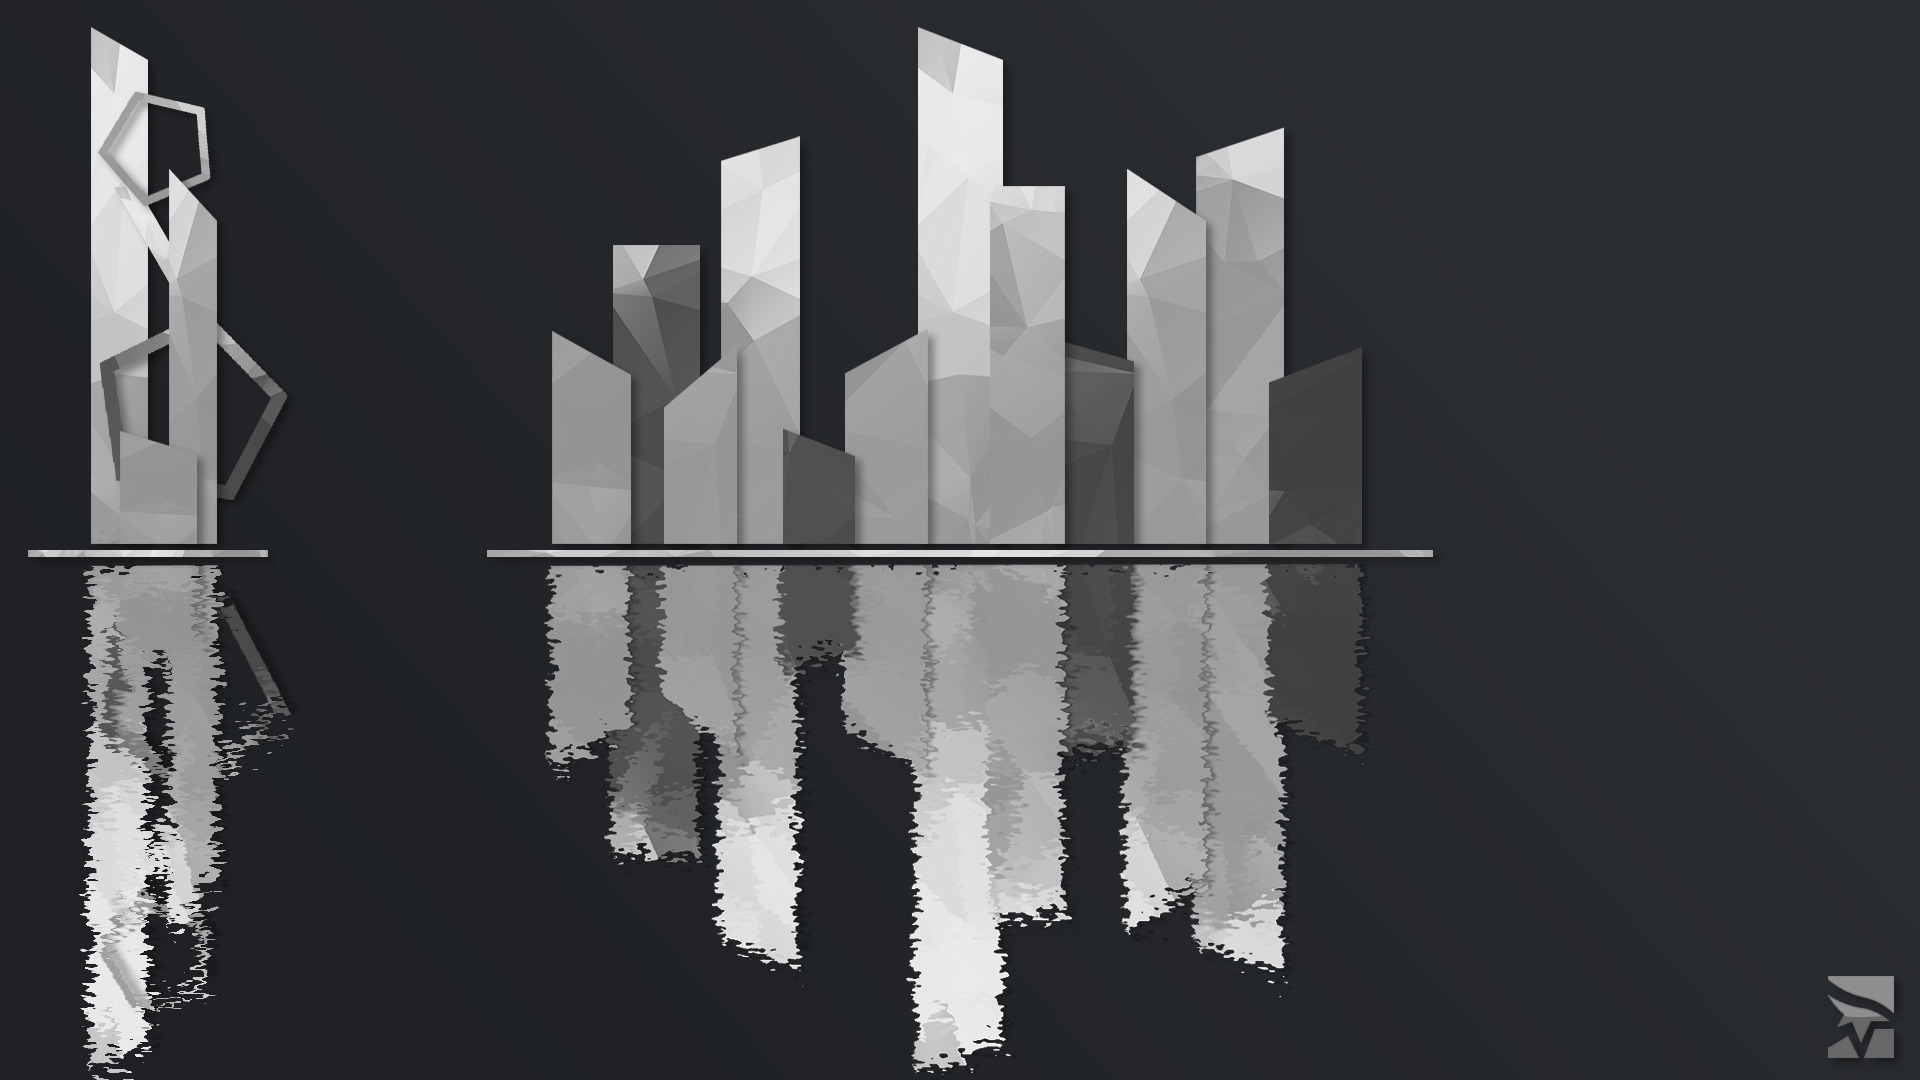 Mirror Amp S Edge Reflection Geometry City Abstract White Black The Shard Wallpapers Hd